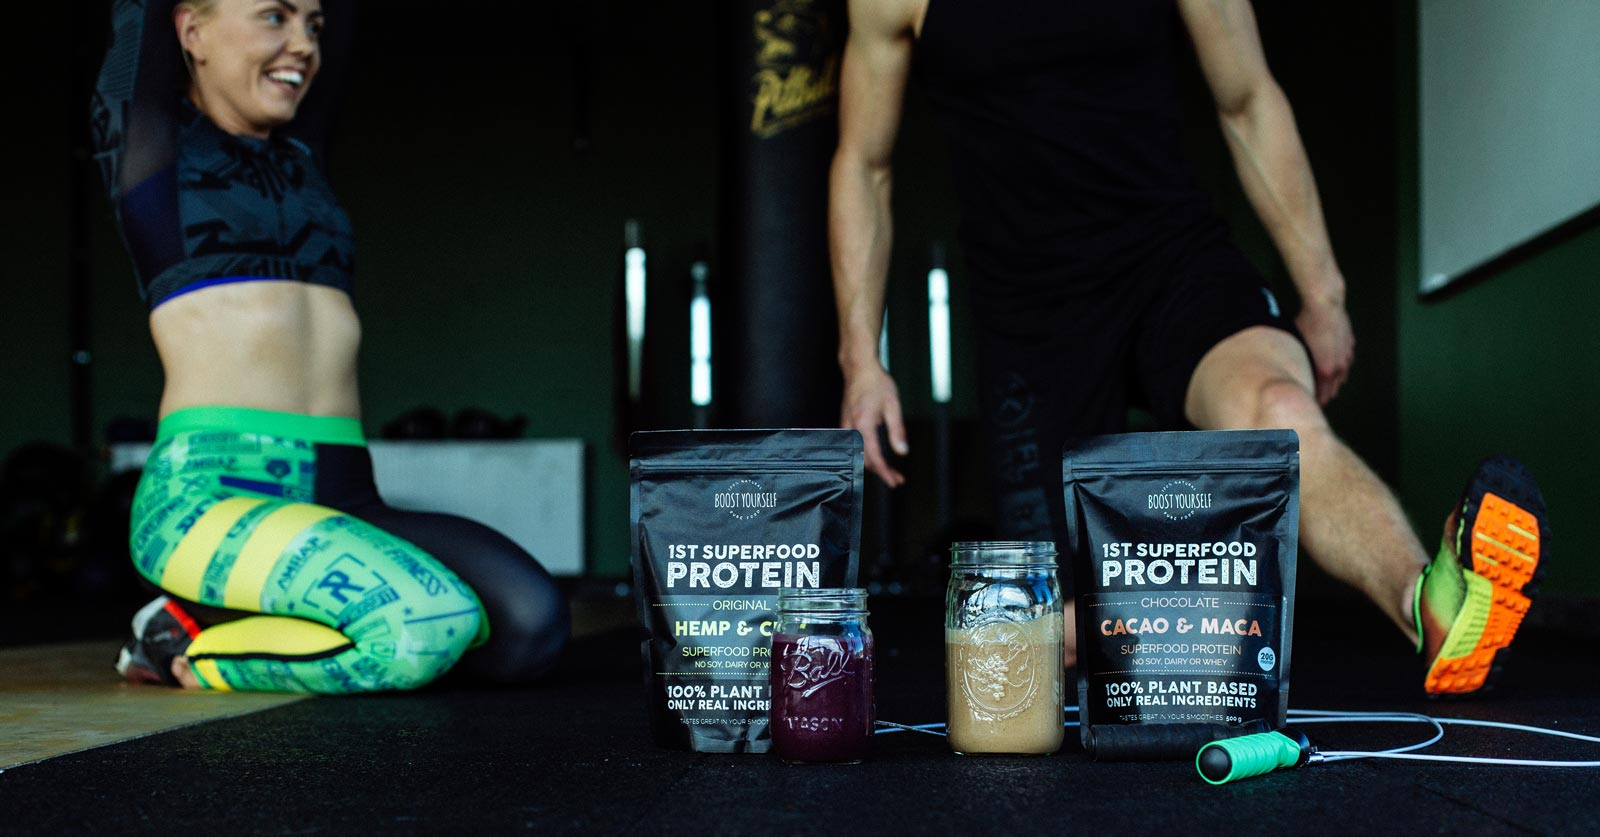 Cacao & Maca protein blend is great for post workout smoothie